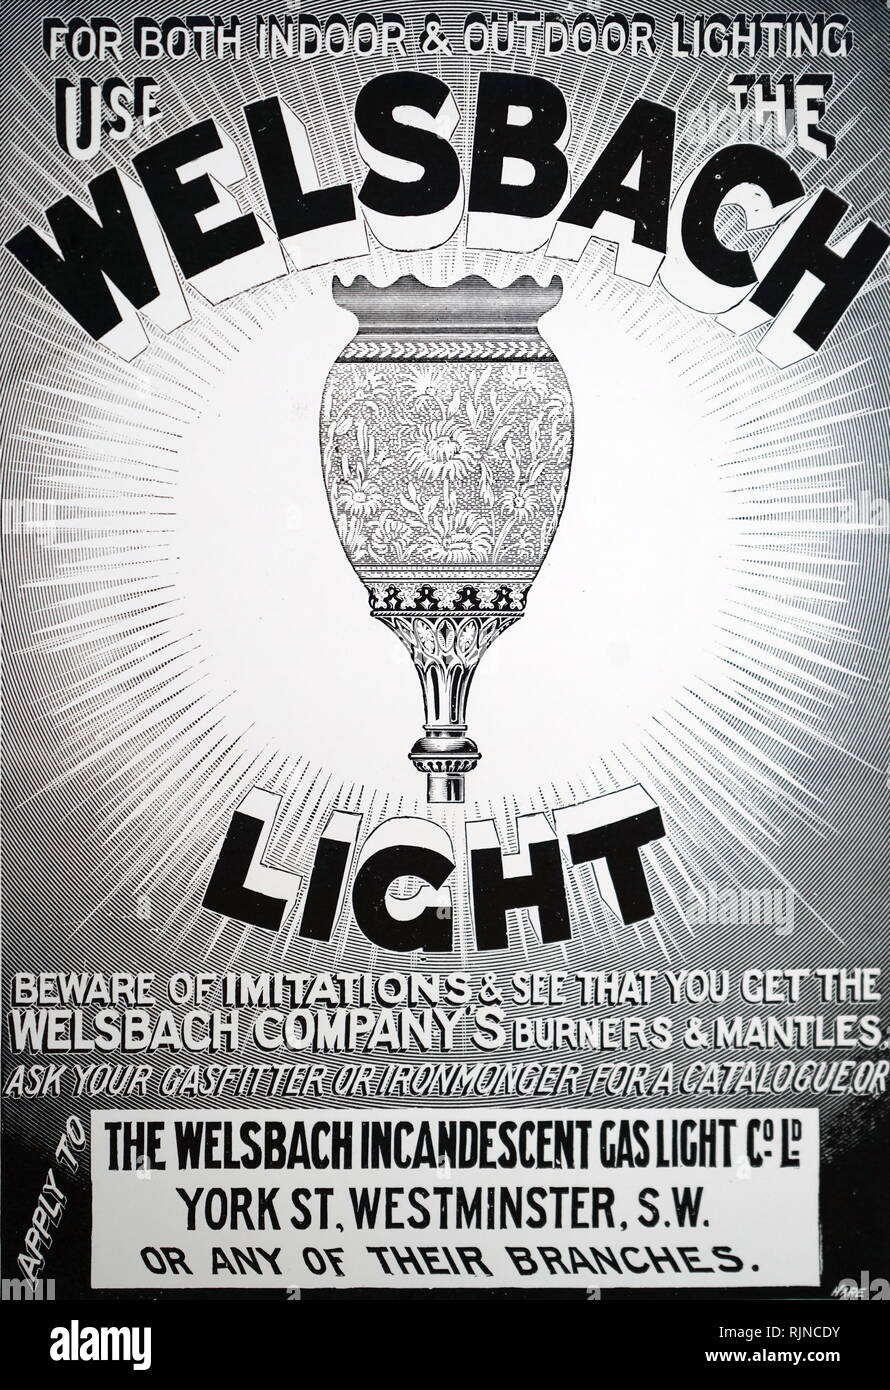 An advertisement for the Welsbach incandescent gas mantle. Dated 20th century - Stock Image